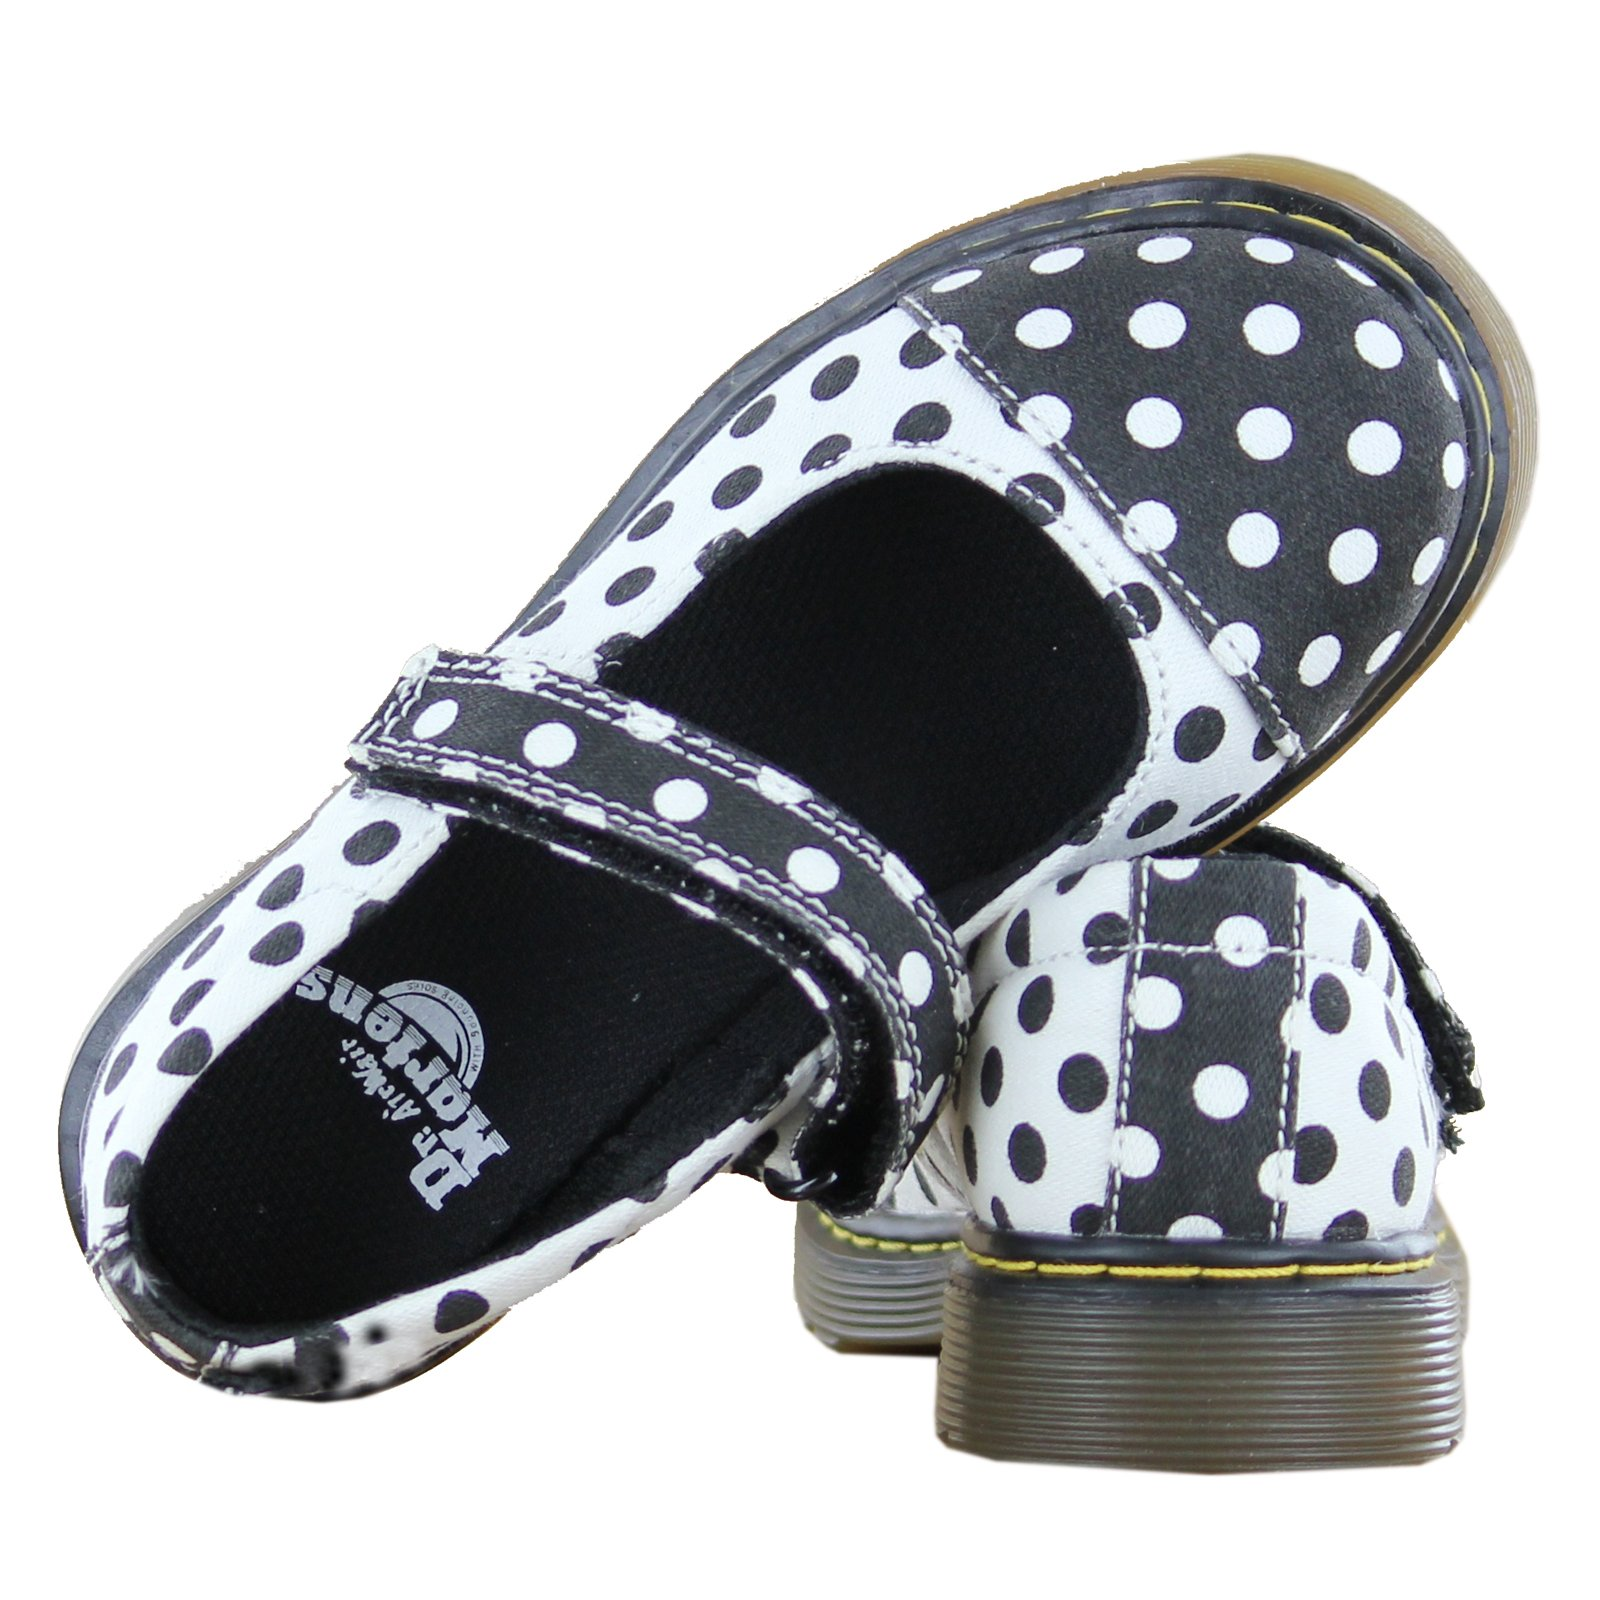 Dr. Martens Kid's Collection Girl's Bijou Toe Cap Mary Jane (Little Kid) Black+White/White+Black Dots Fine Canvas Flat 13 UK (1 US Little Kid) M by Dr. Martens (Image #4)